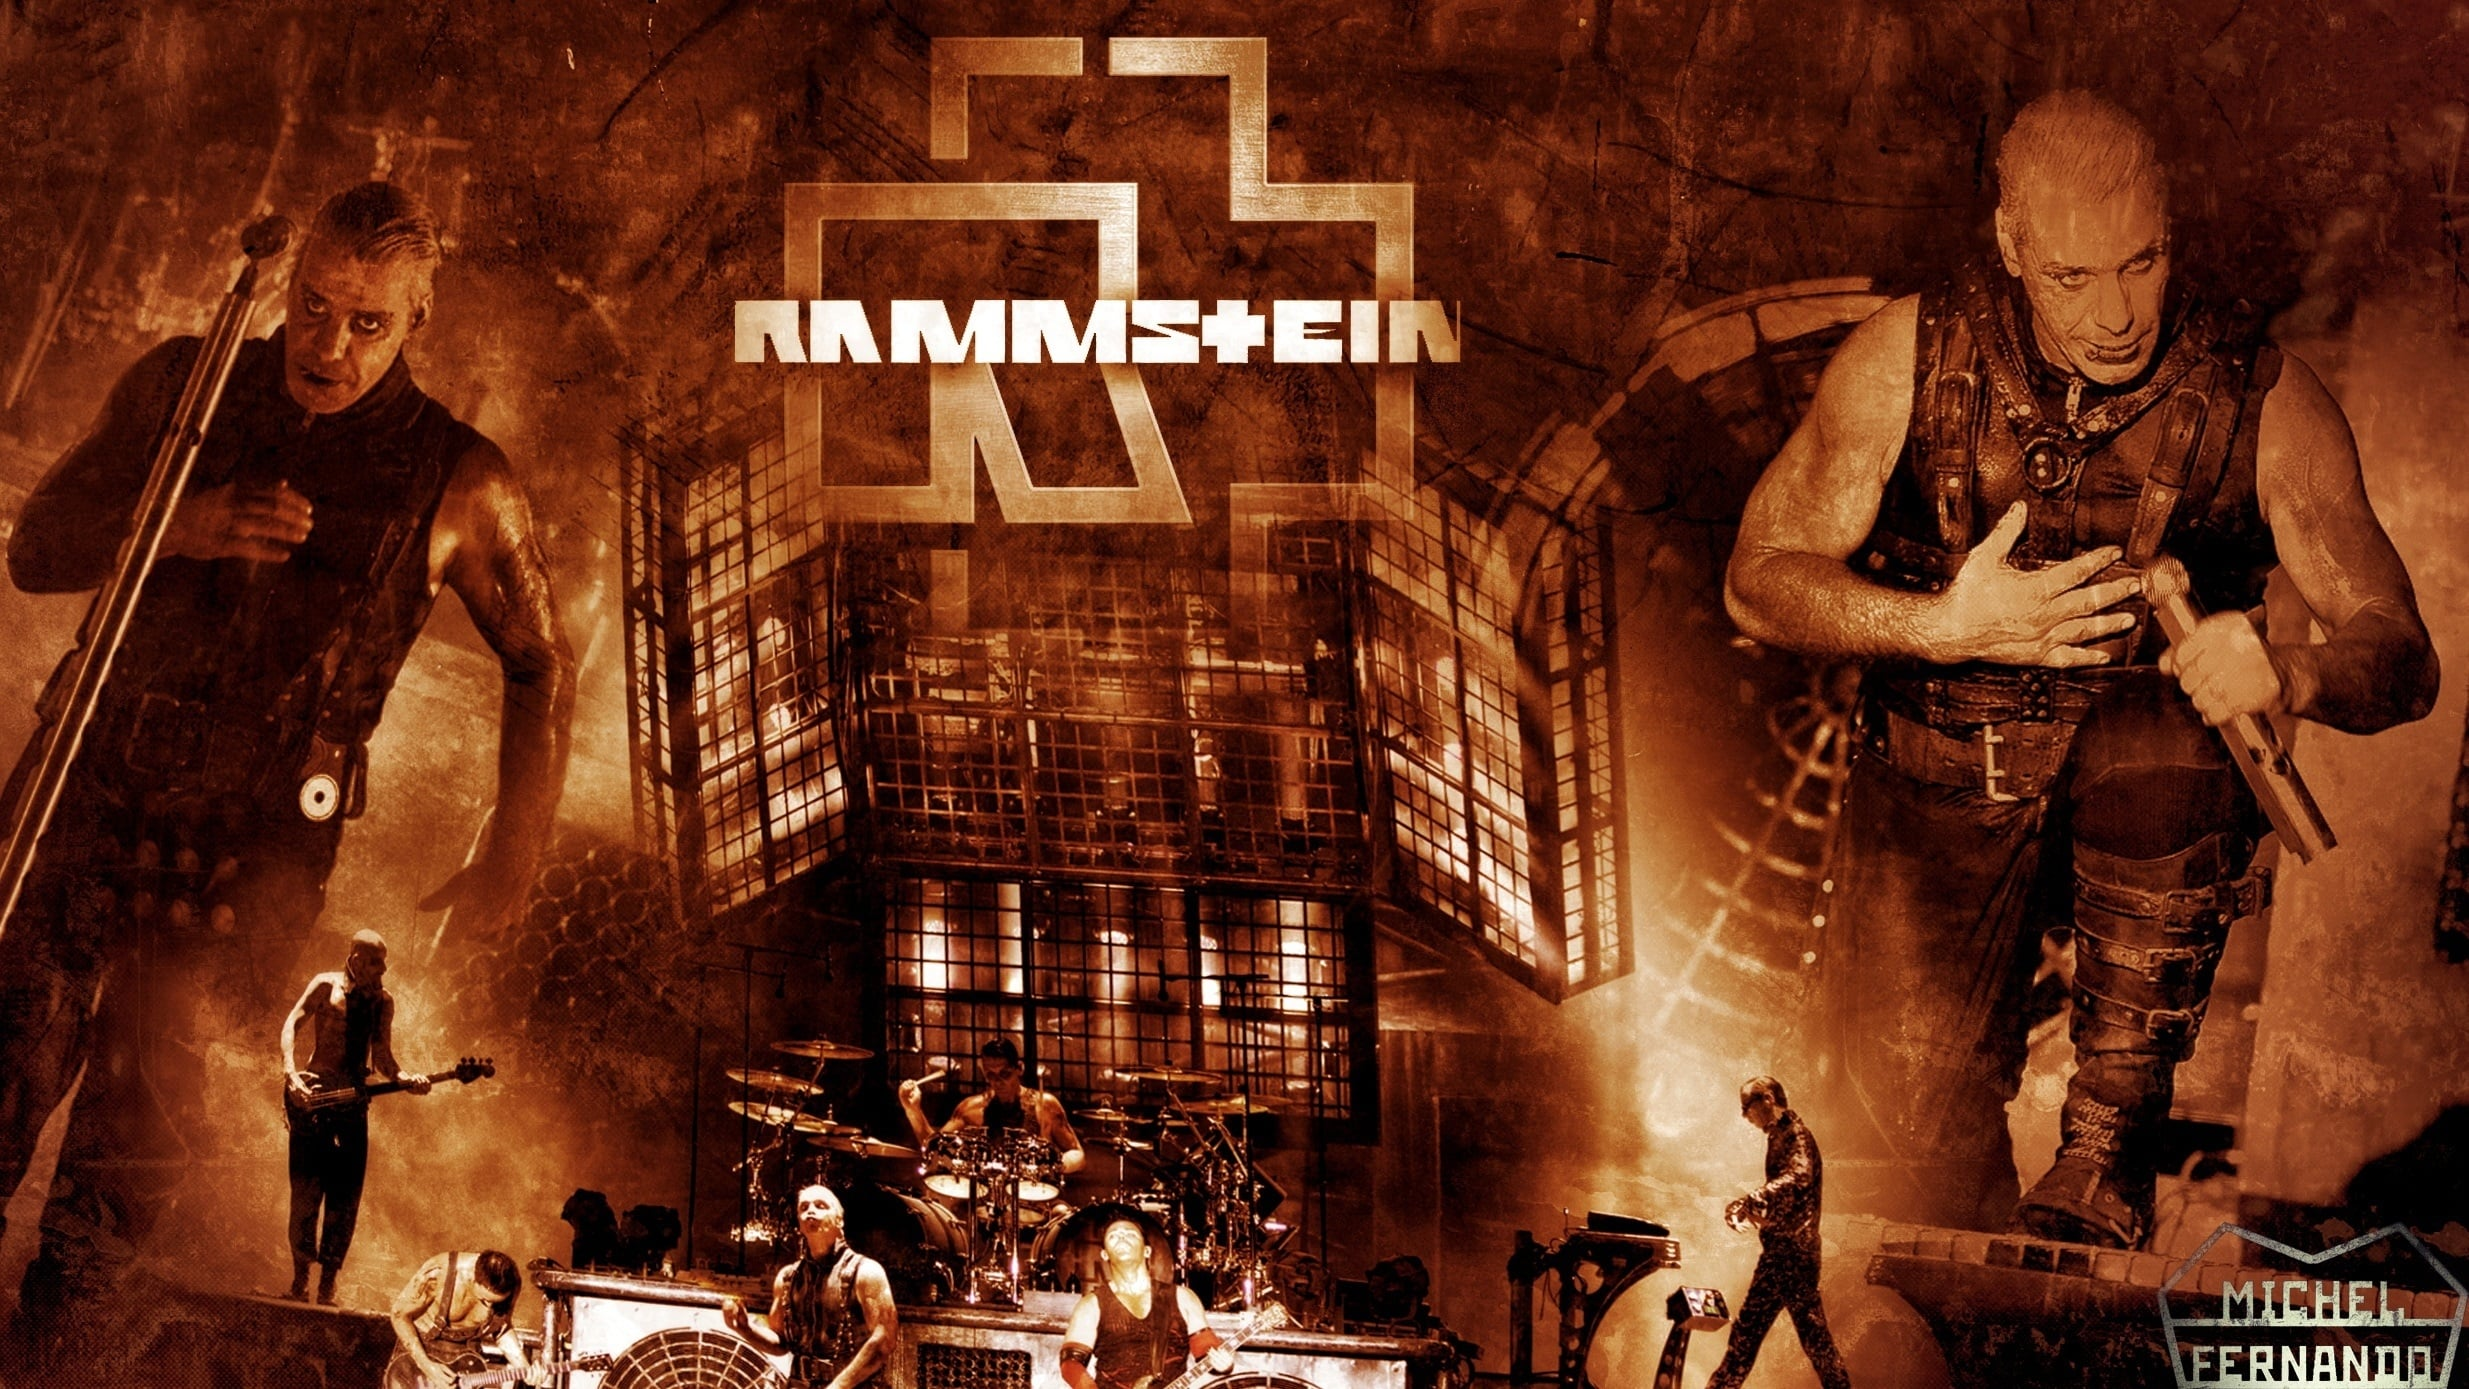 regarder rammstein v lkerball live n mes film en streaming film en streaming. Black Bedroom Furniture Sets. Home Design Ideas